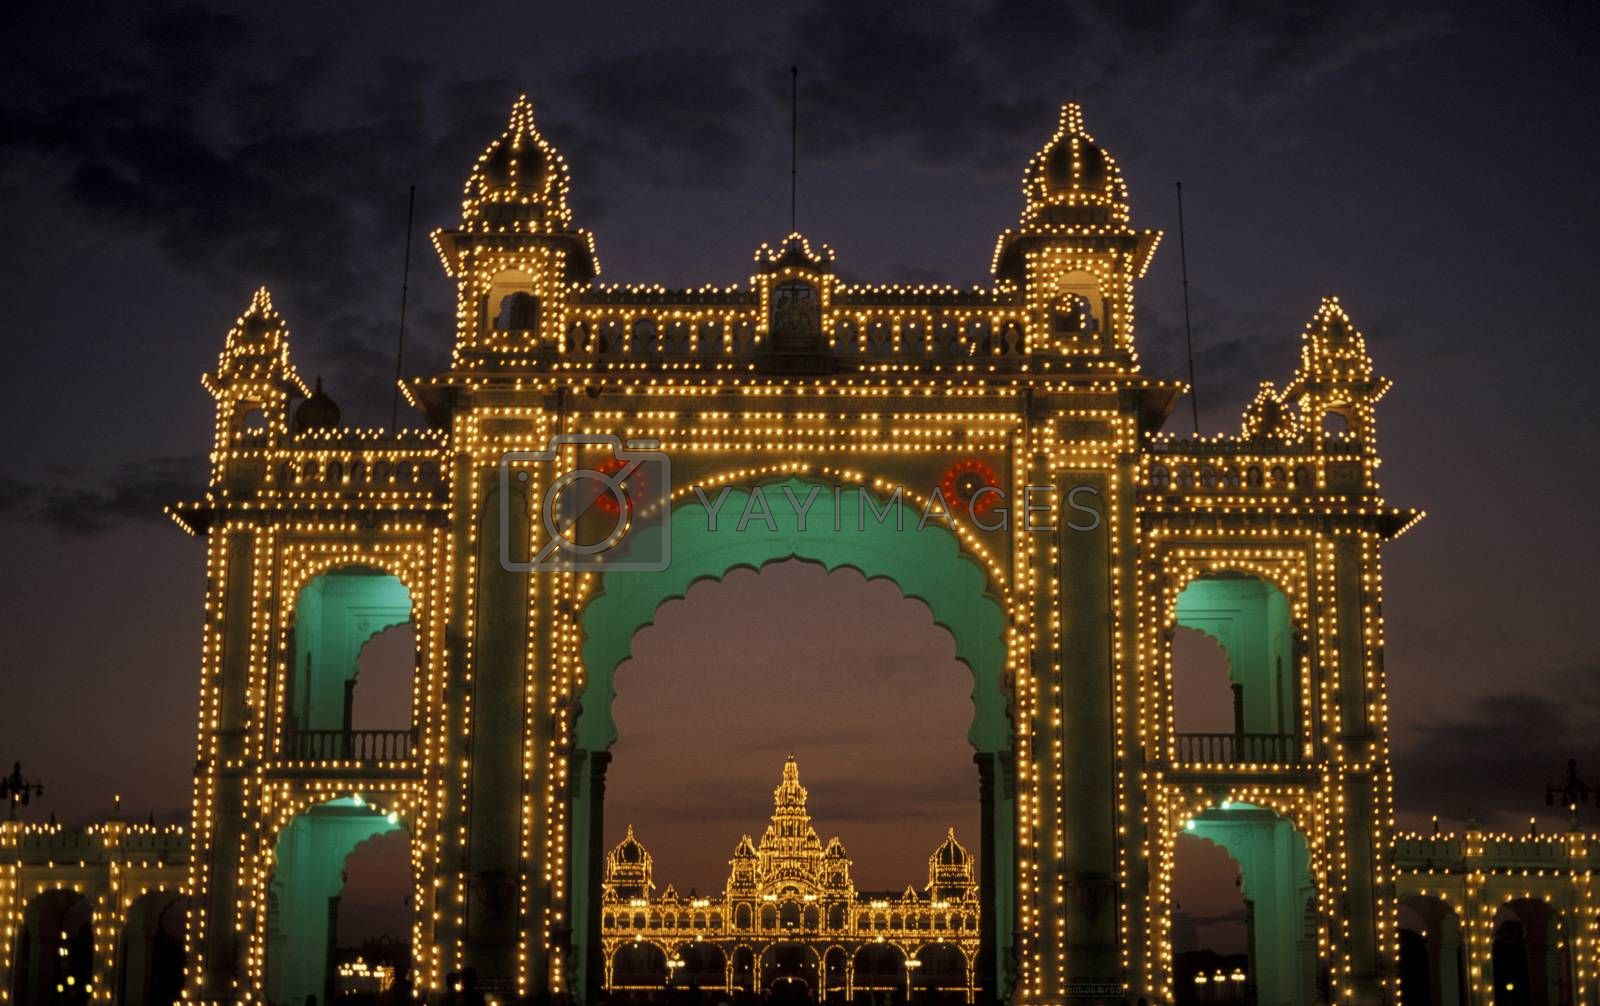 the Palace in the city of Mysore in the province of Karnataka in India.